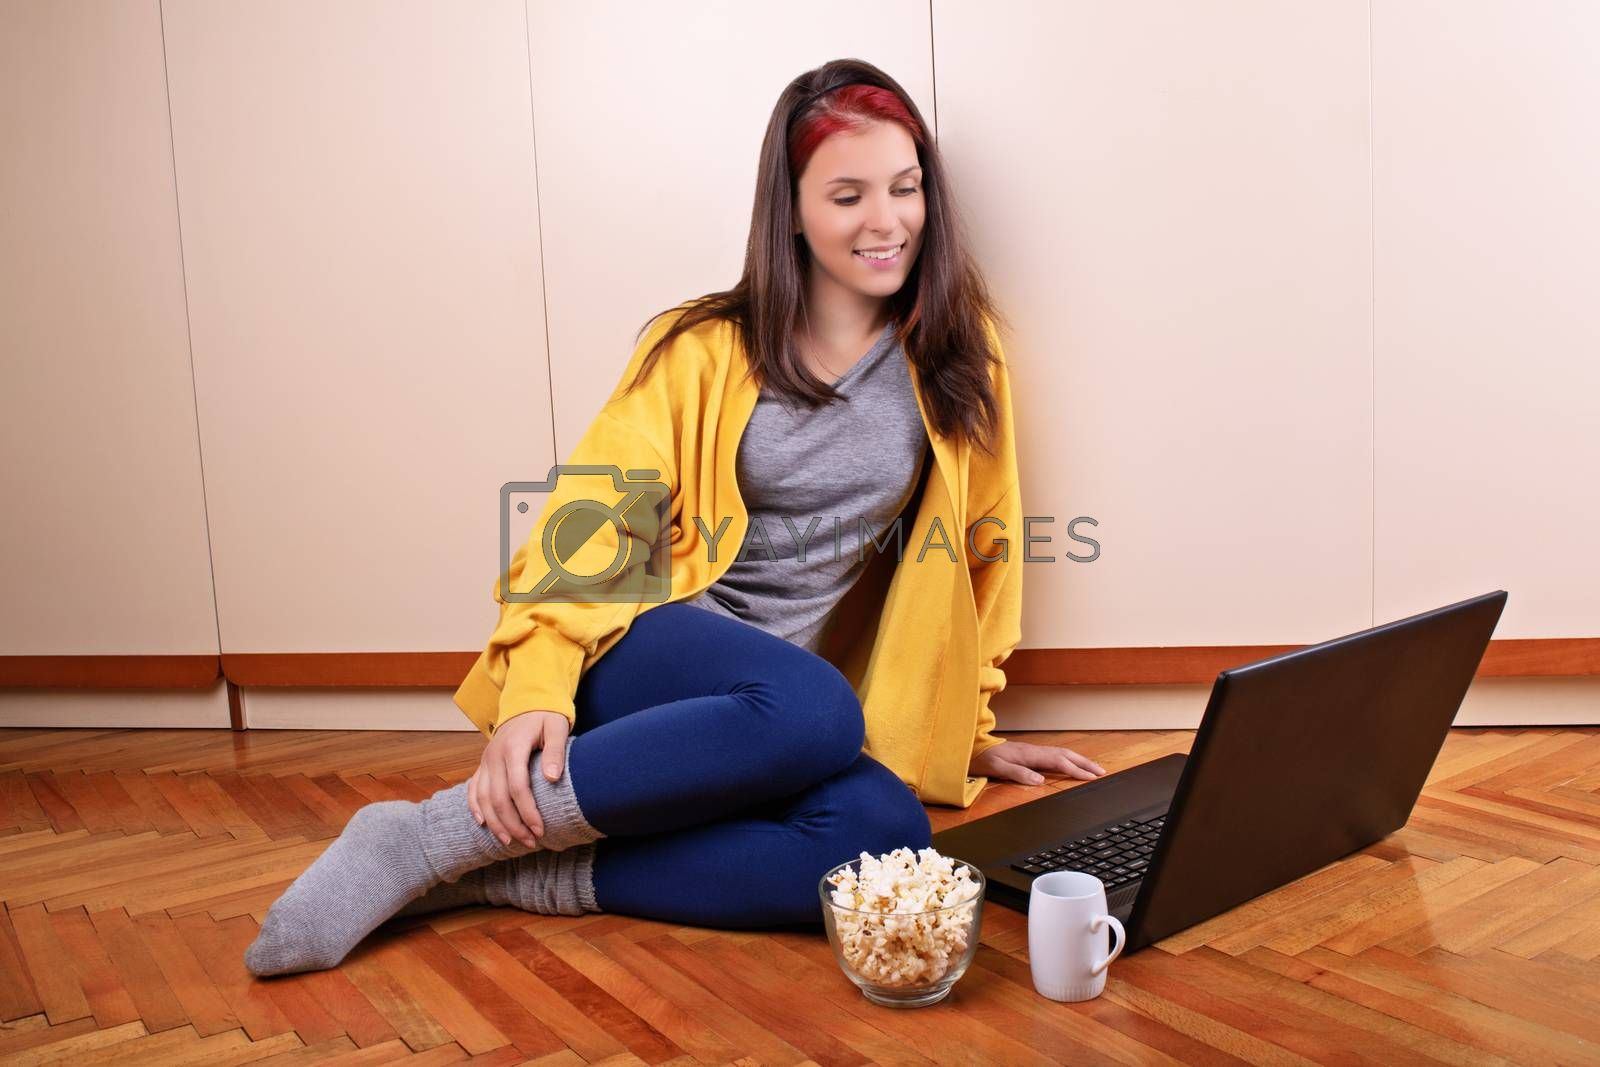 Beautiful smiling young girl in casual clothes sitting on the floor of her bedroom, ready to watch a movie on her laptop with a bowl of popcorn and a cup of coffee or tea. Leisure concept.